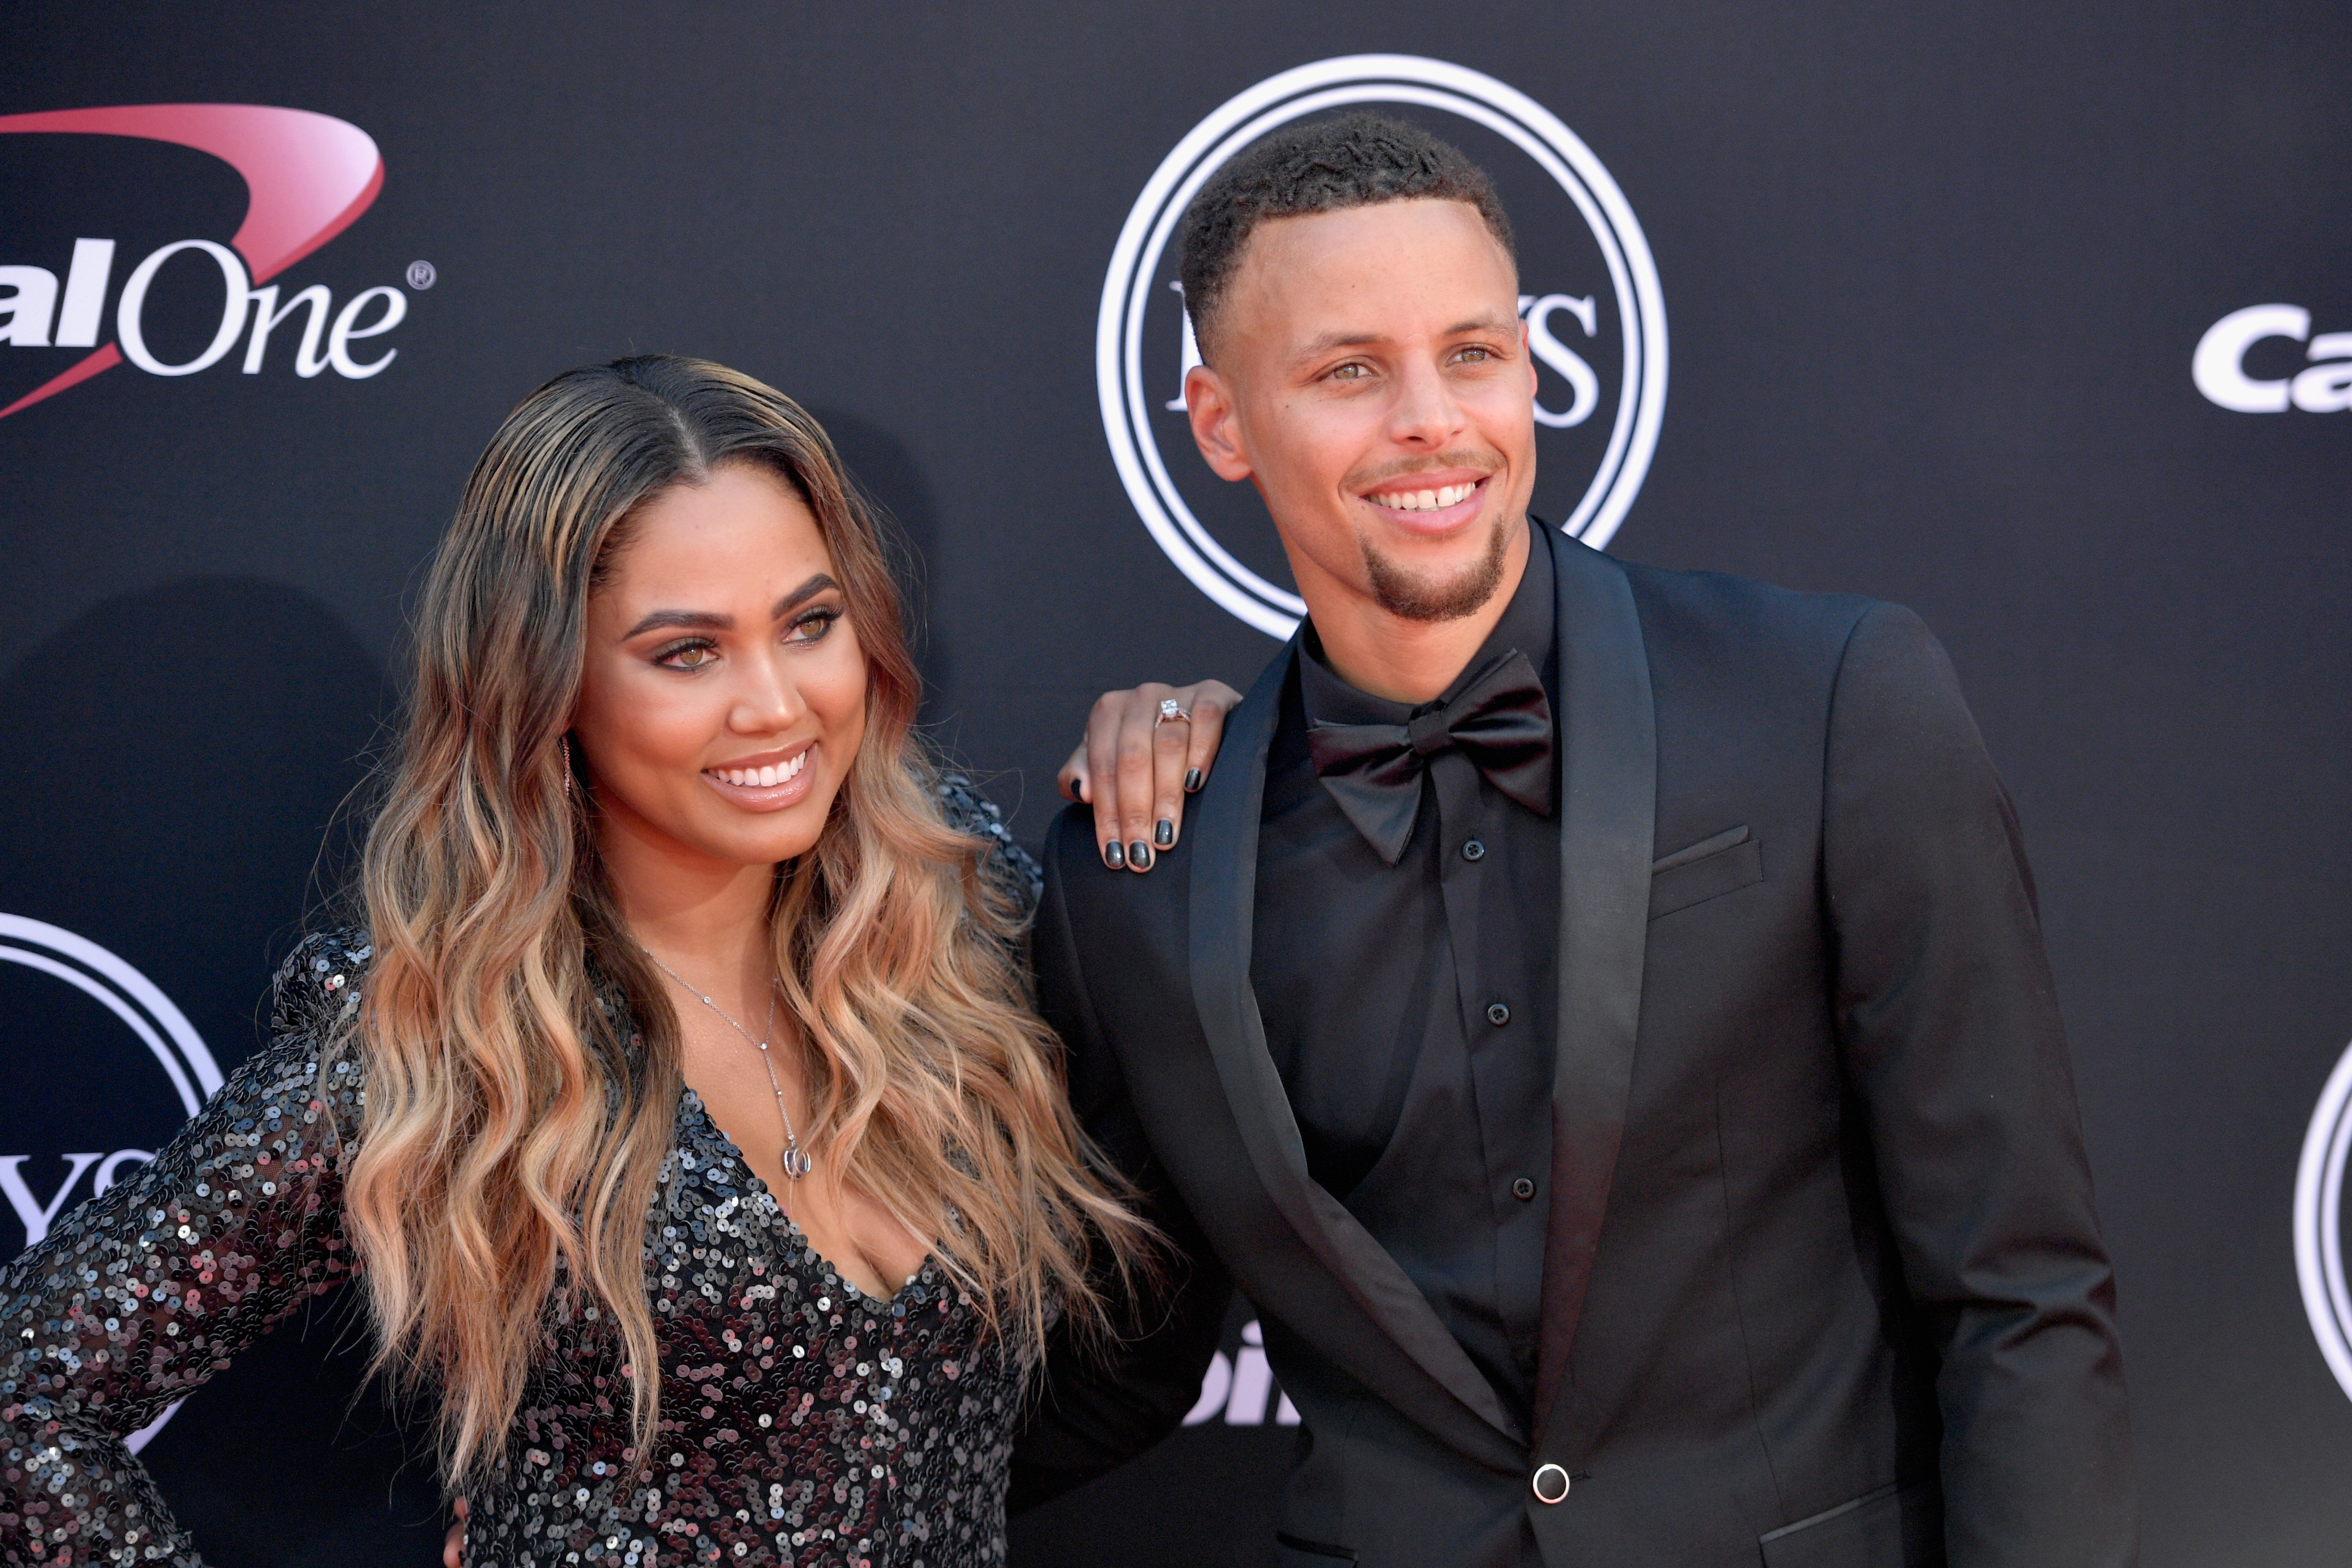 Steph Curry and Ayesha Curry attend the 2017 ESPYS at Microsoft Theater on July 12, 2017 in Los Angeles, California. | Source: Getty Images